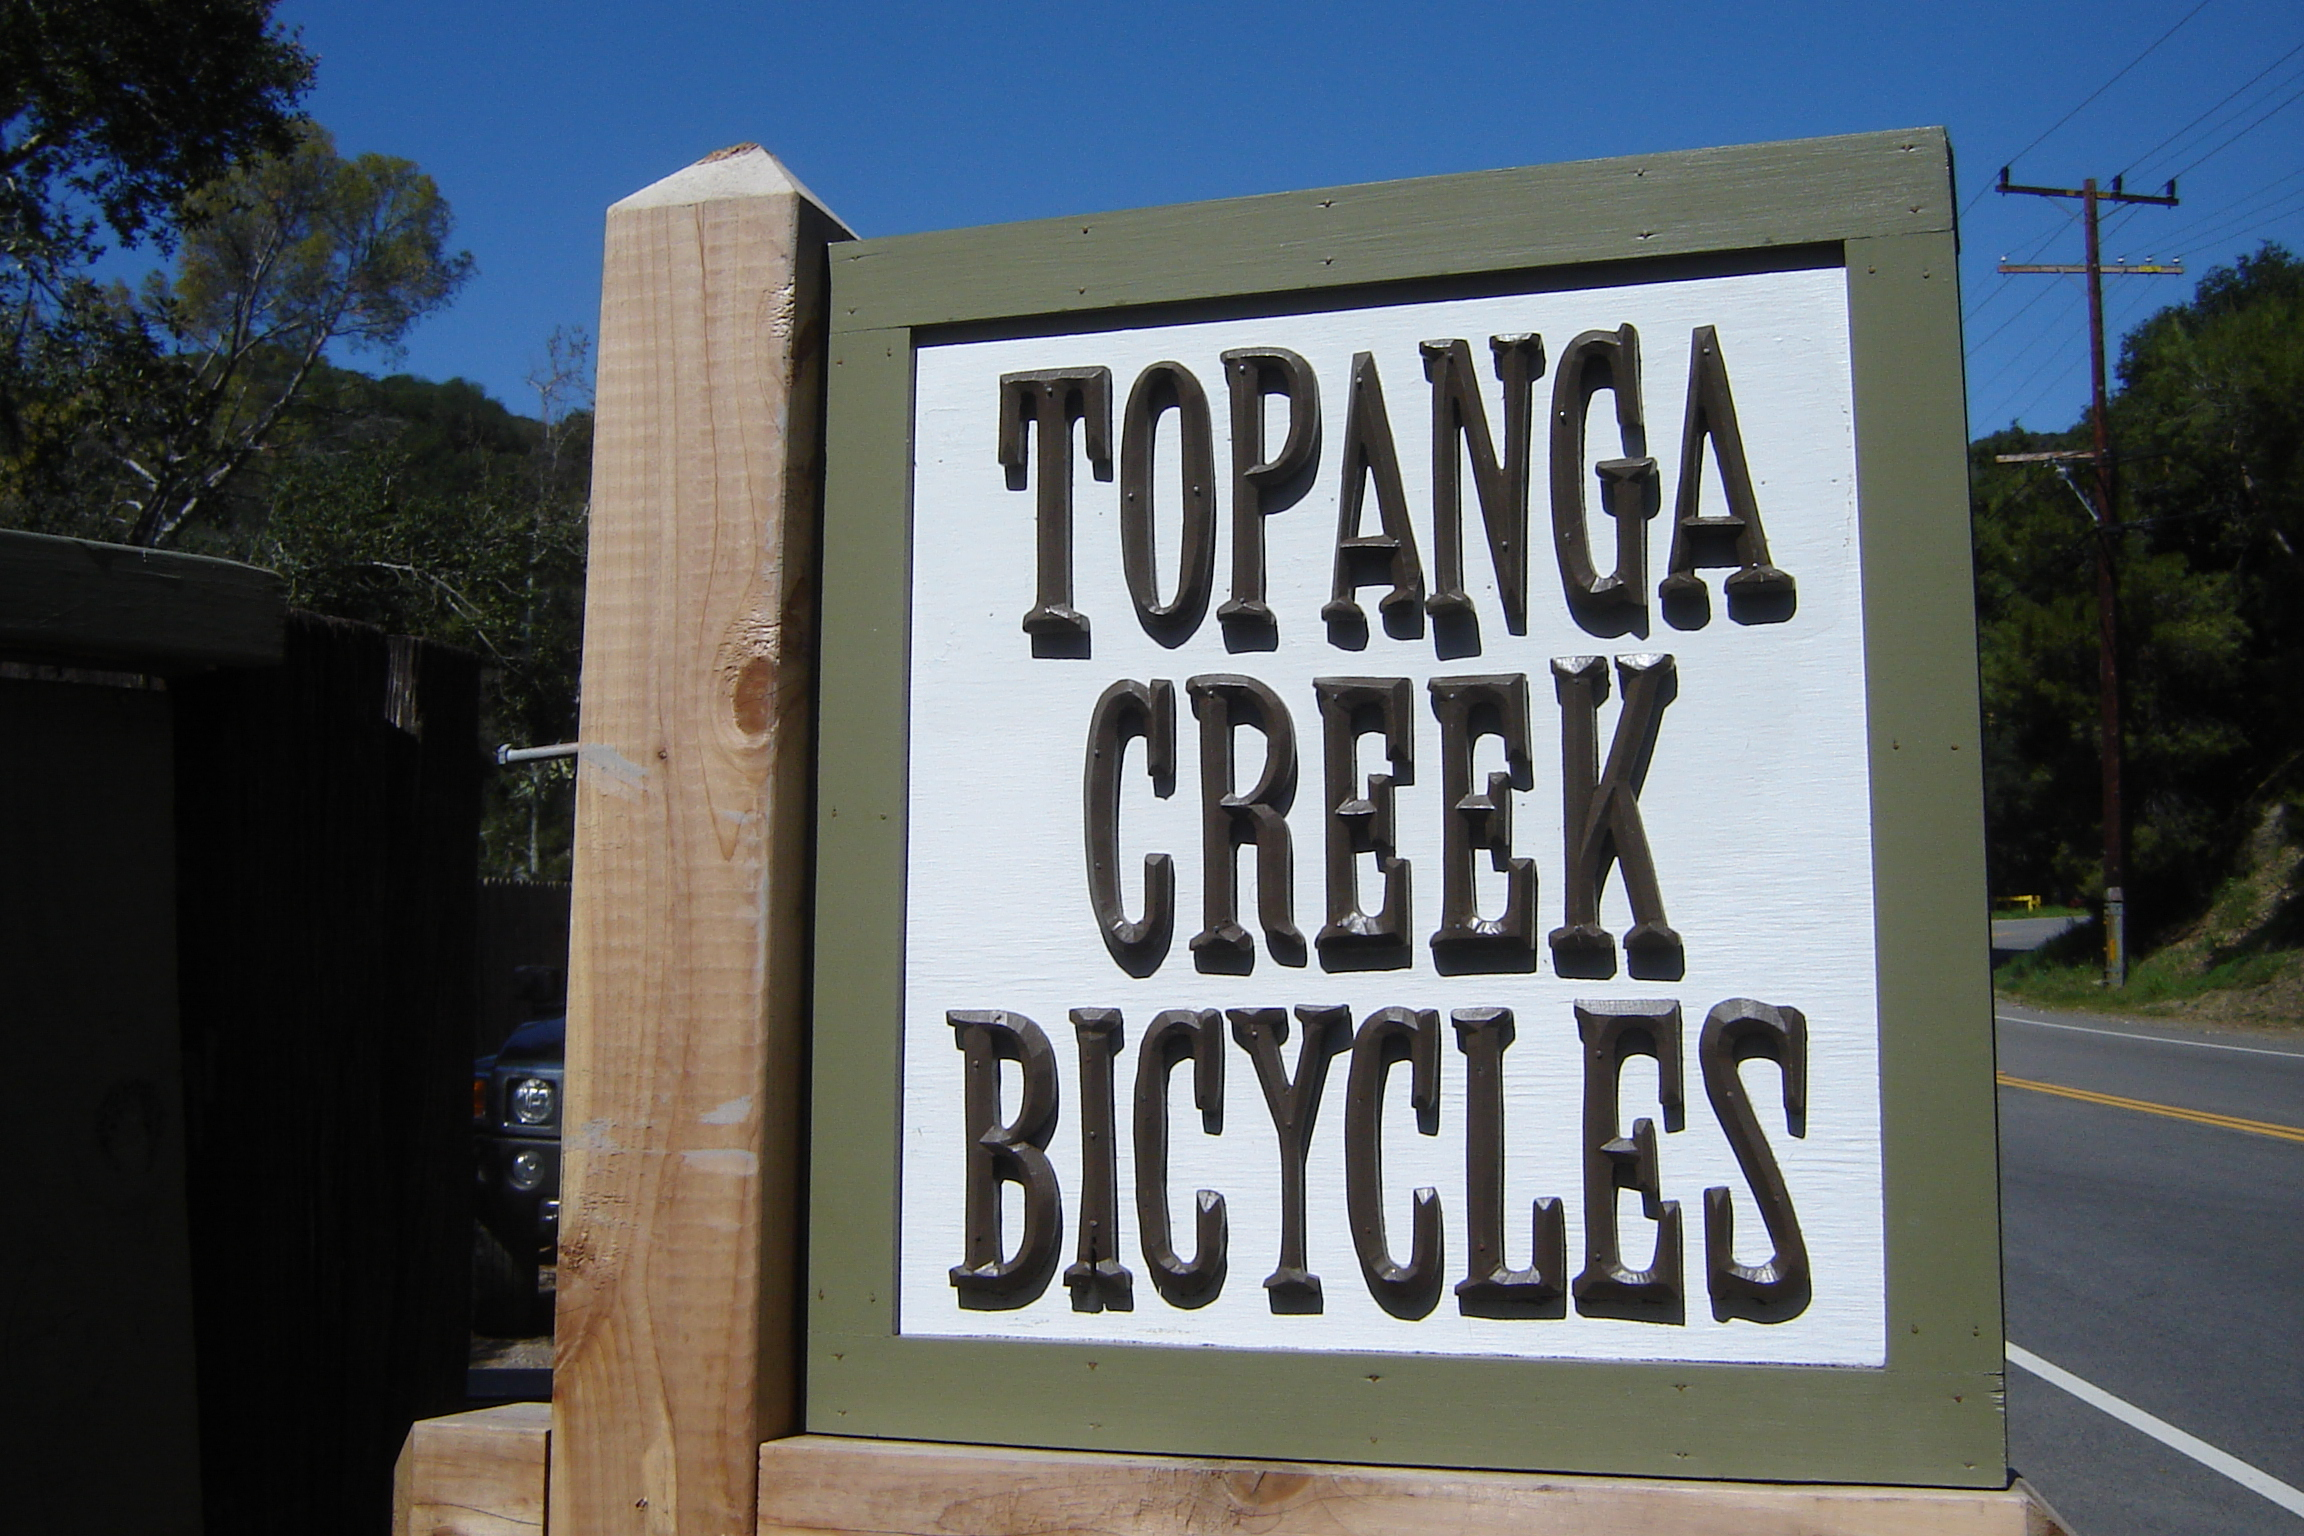 We are changing the name to Topanga Creek Bicycles